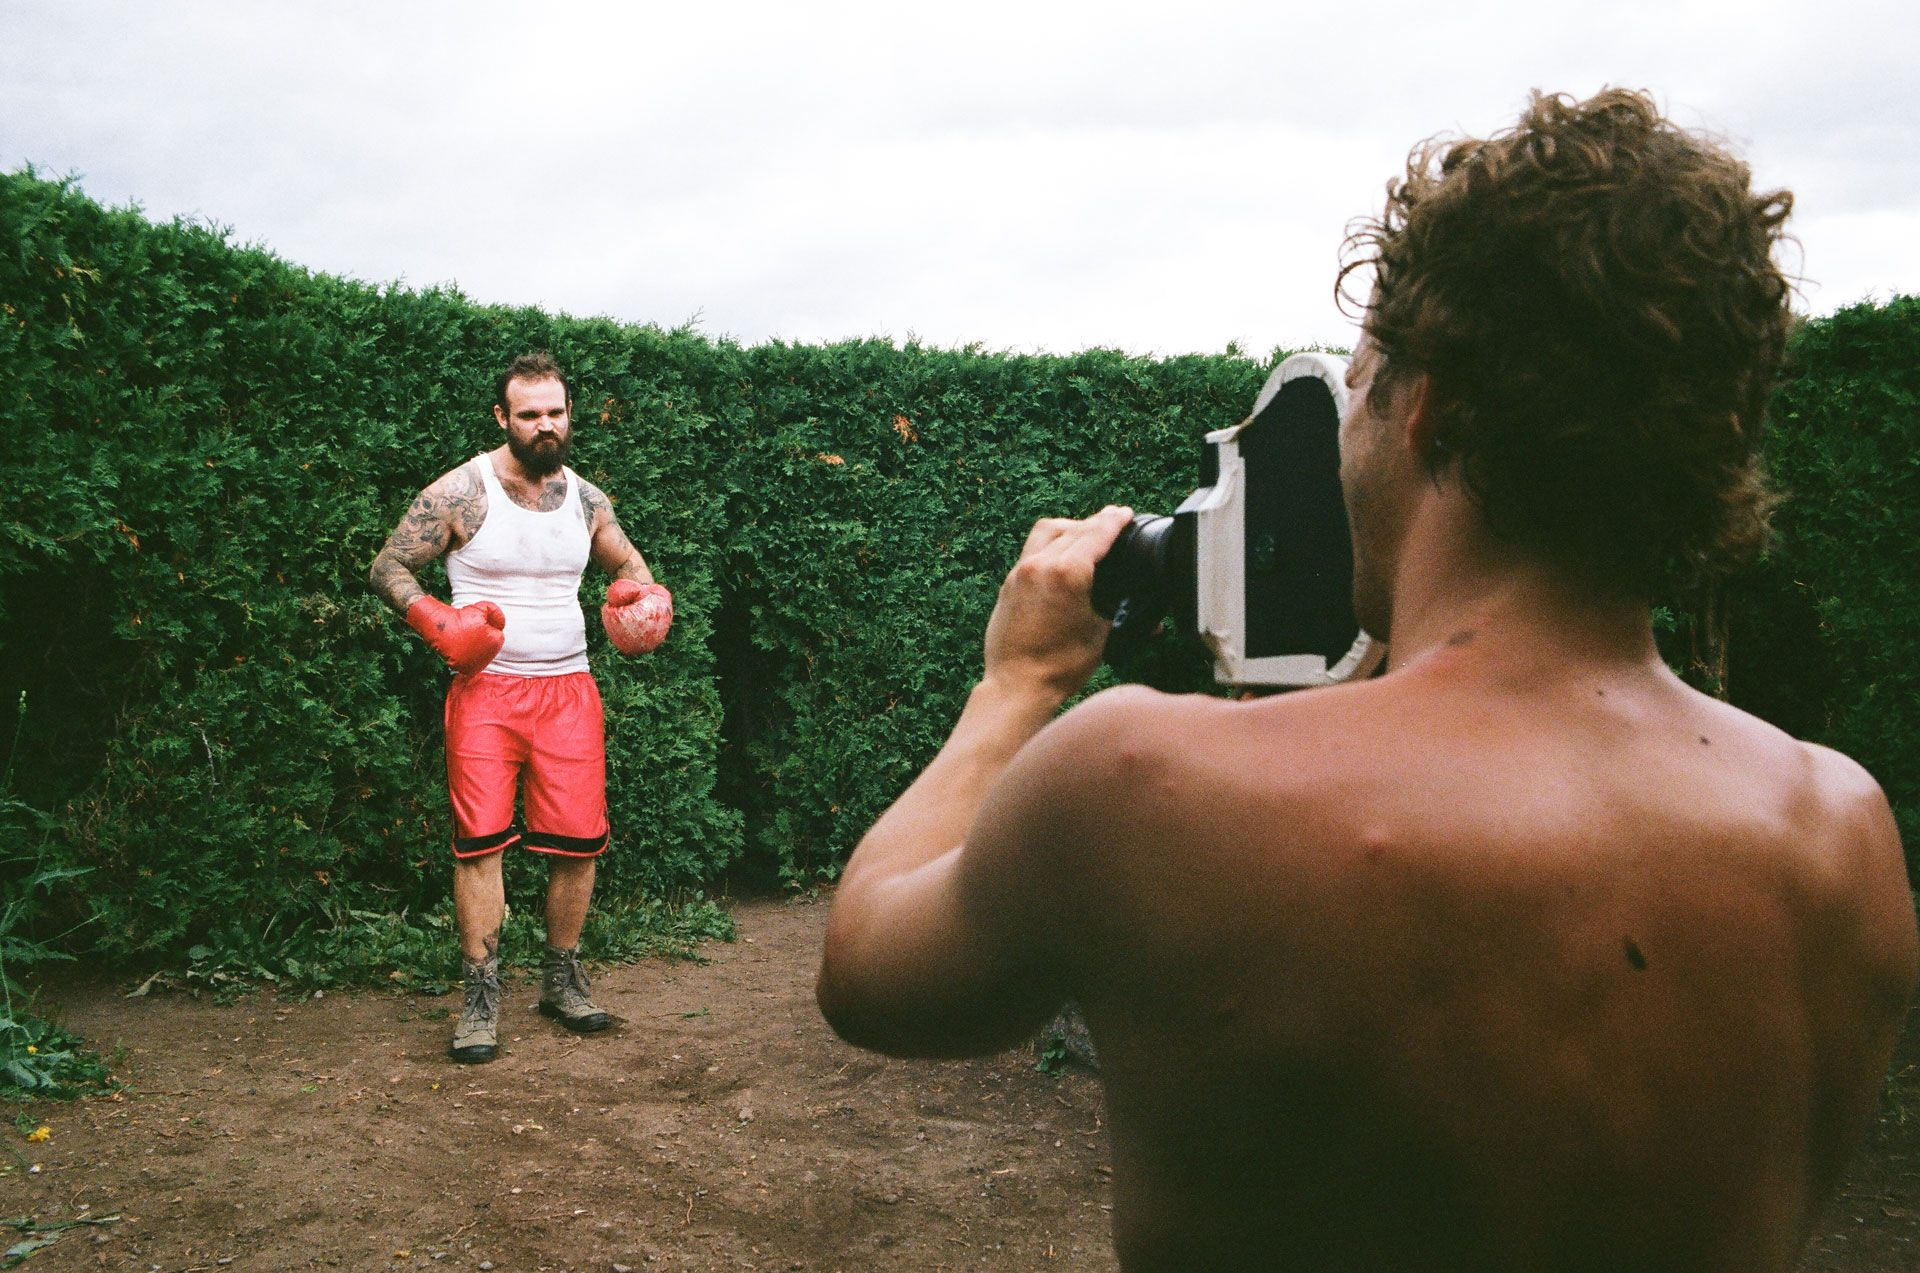 actor dressed as boxer with red gloves being filmed by a shirtless cameraman for Alaclair Ensemble hip hop collective music video Felix filmed by Les Gamins featuring rapper Souldia